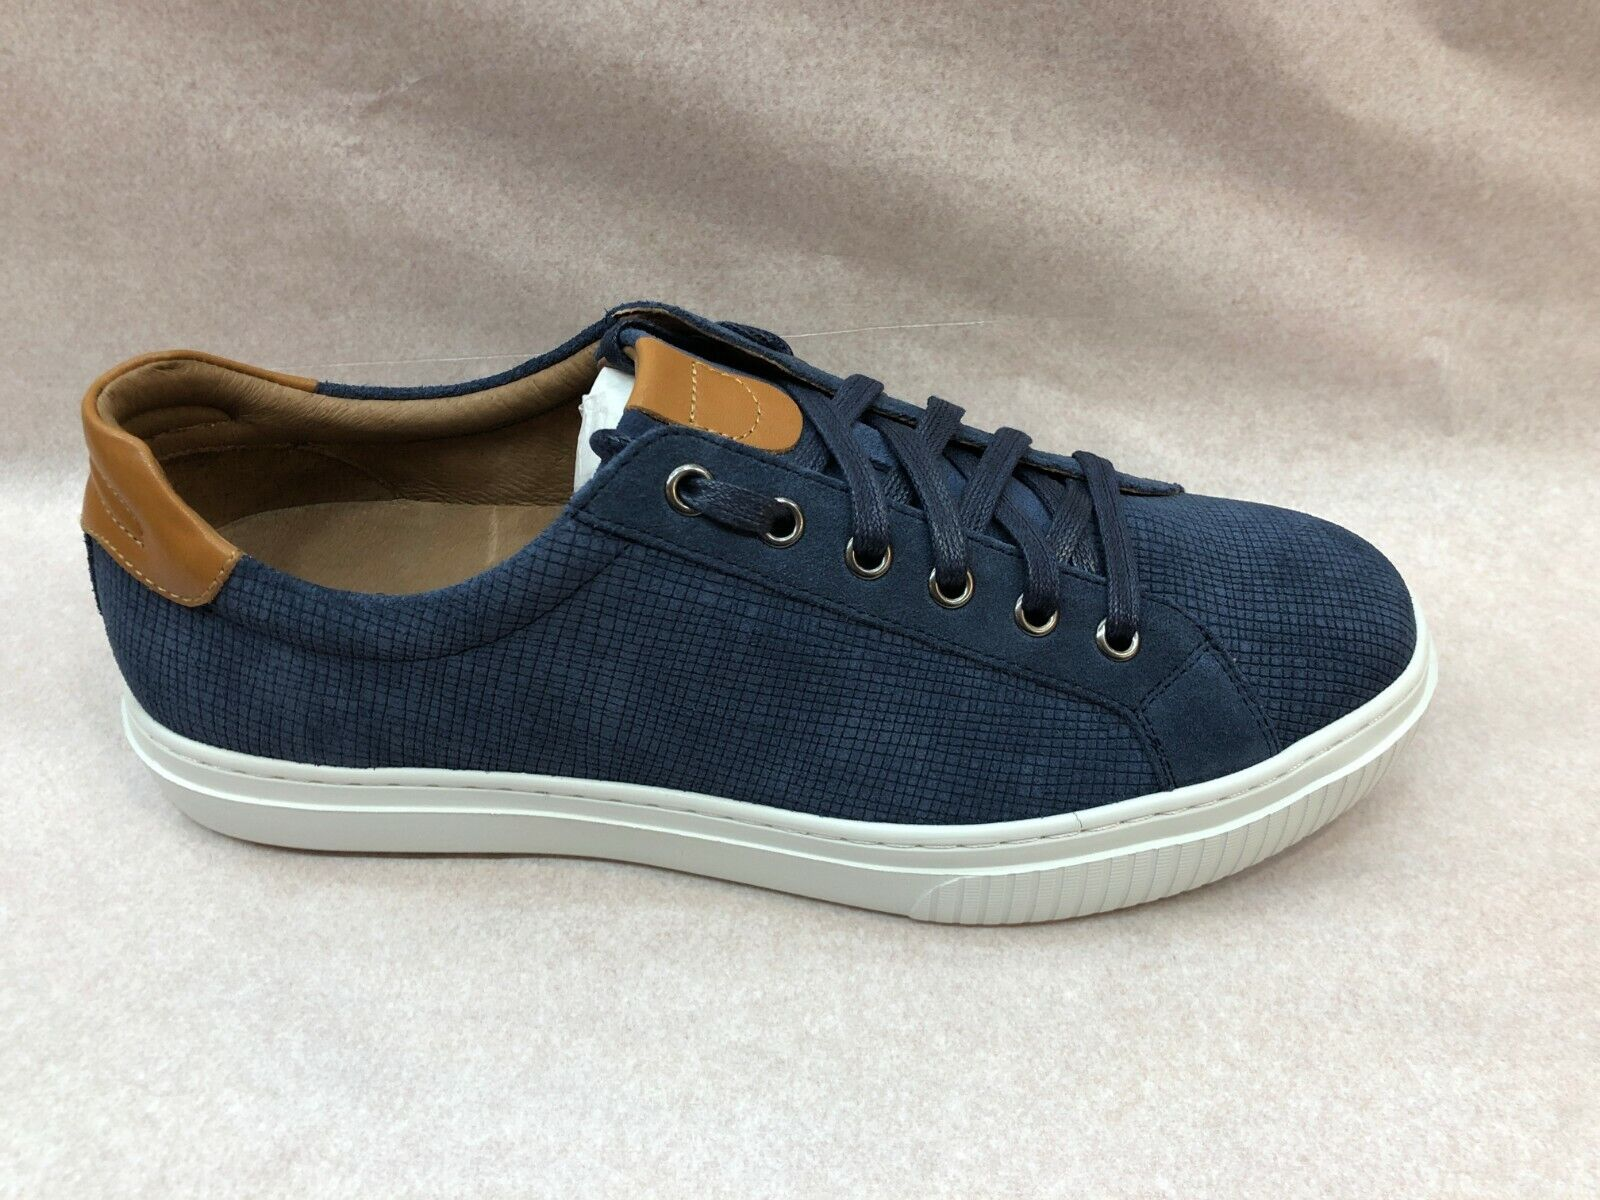 Johnston & Murphy Collection Men's Sneaker 1850 Toliver Lace-to-Toe In Denim